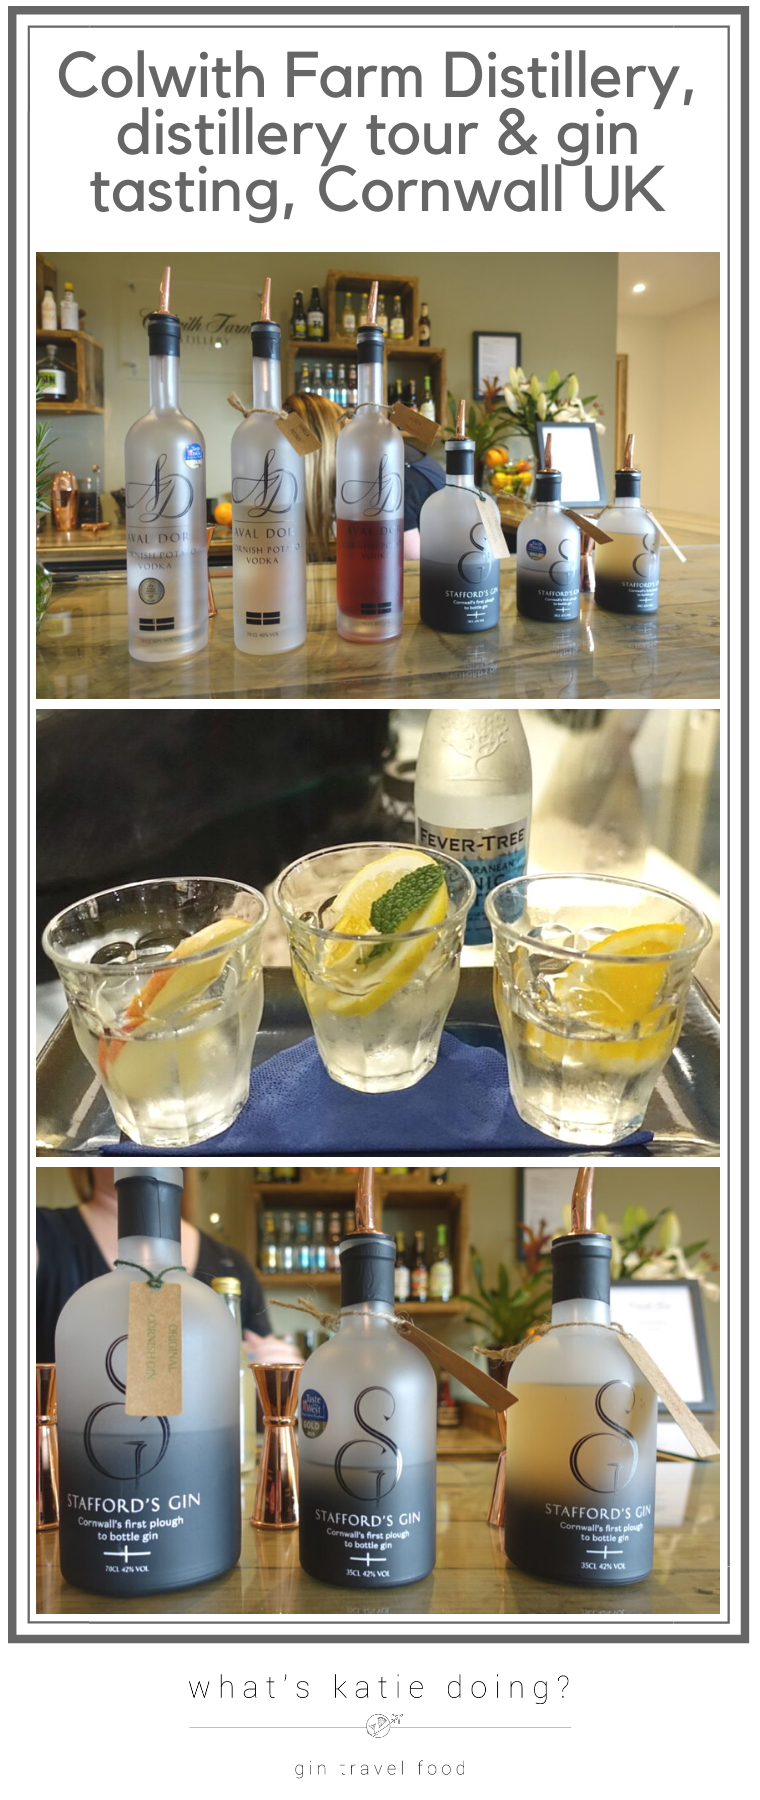 Colwith Farm Distillery tour and gin tasting, Cornwall UK